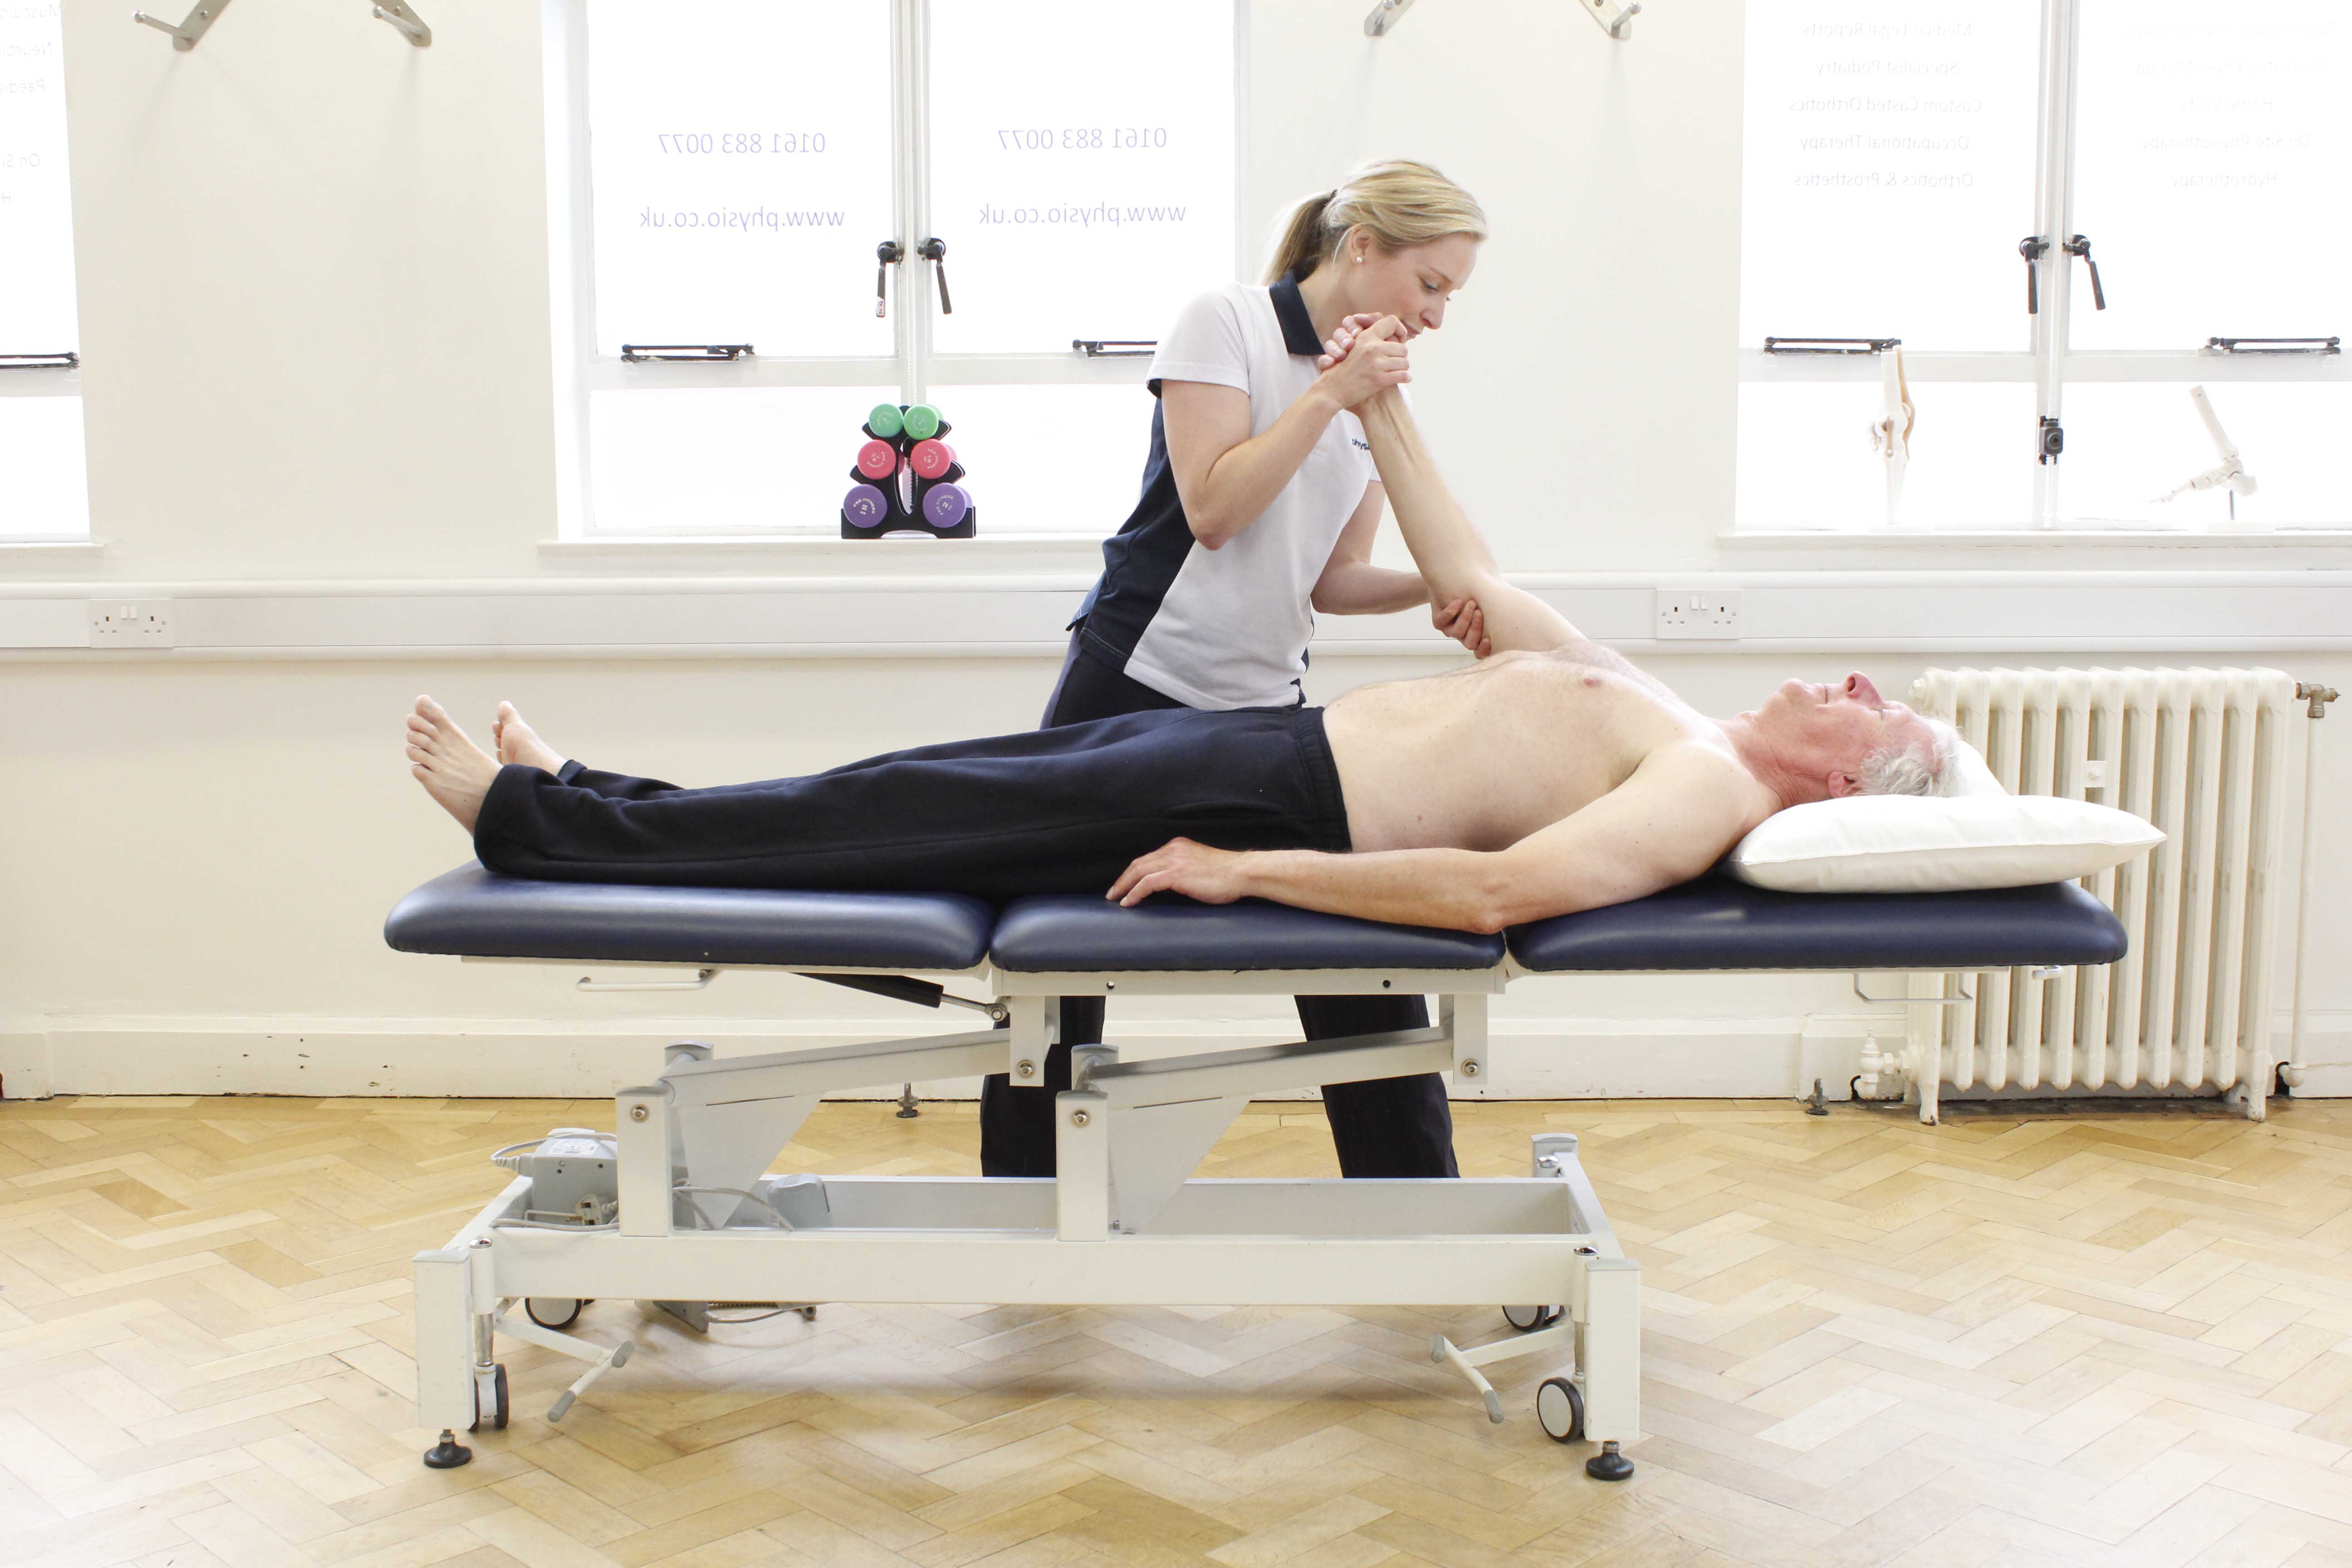 Our physiotherapist helping to decrease any stiffness through gentle upper limb movement.